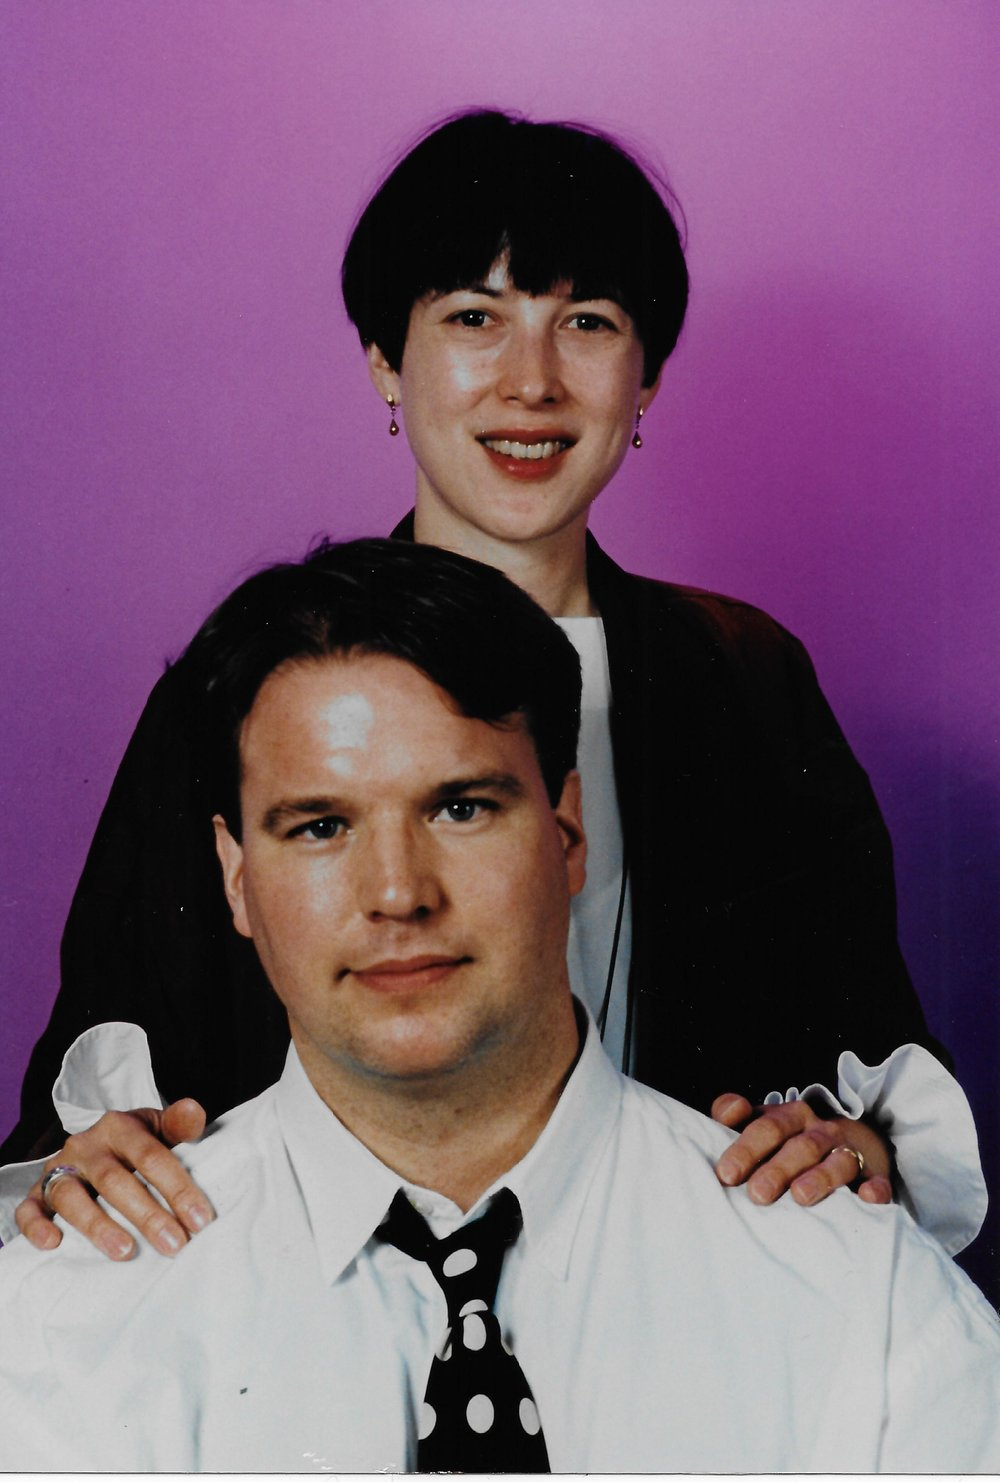 Susan Manno and Alexander Wood, photograph by Neil Winokur, 1994.